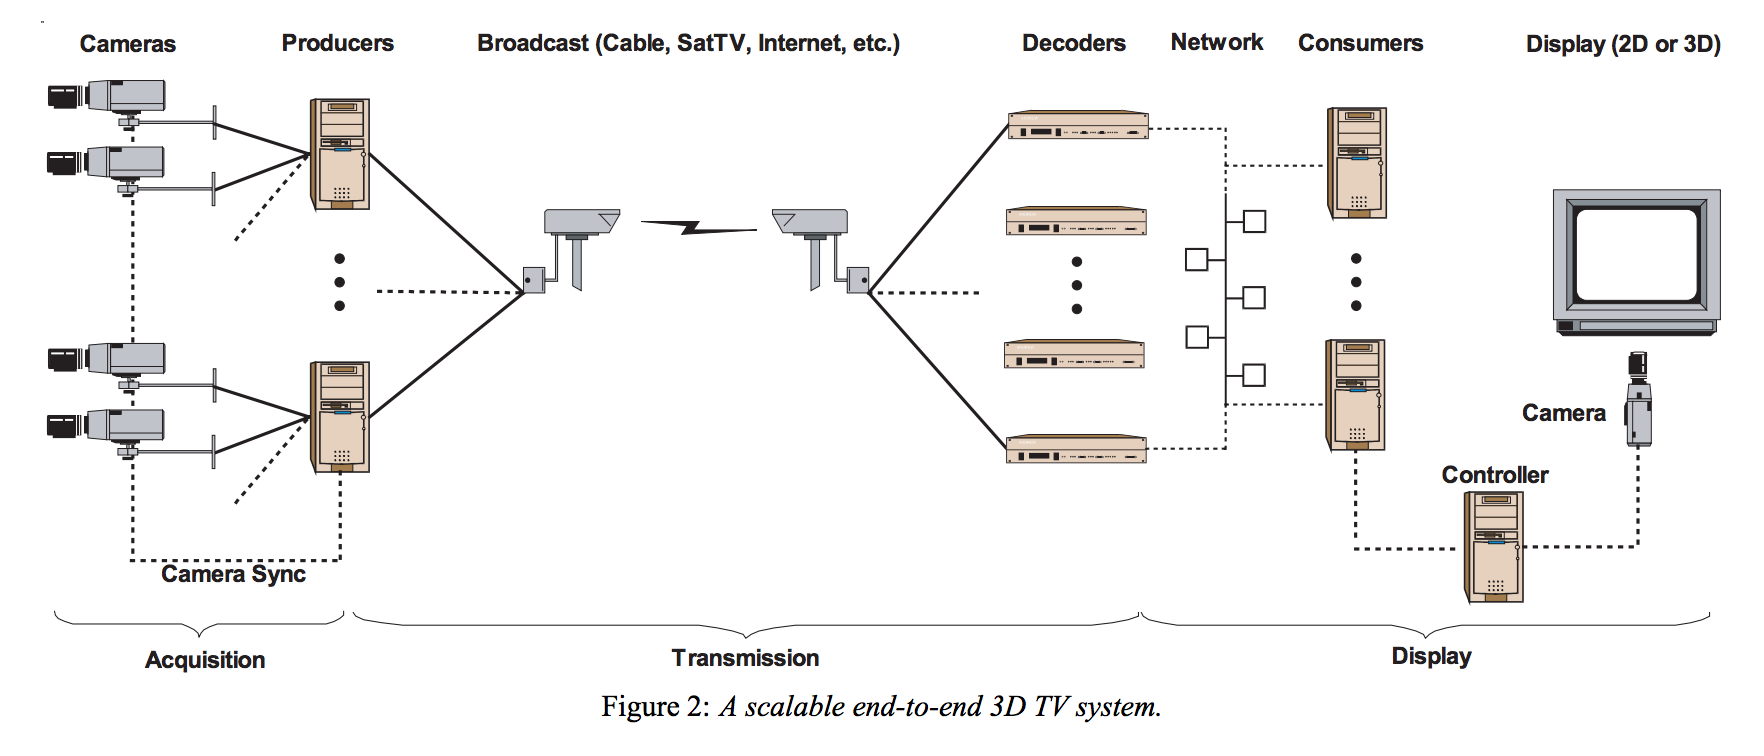 3D TV: A Scalable System for Real-Time Acquisition, Transmission and Autostereoscopic Display of Dynamic Scenes